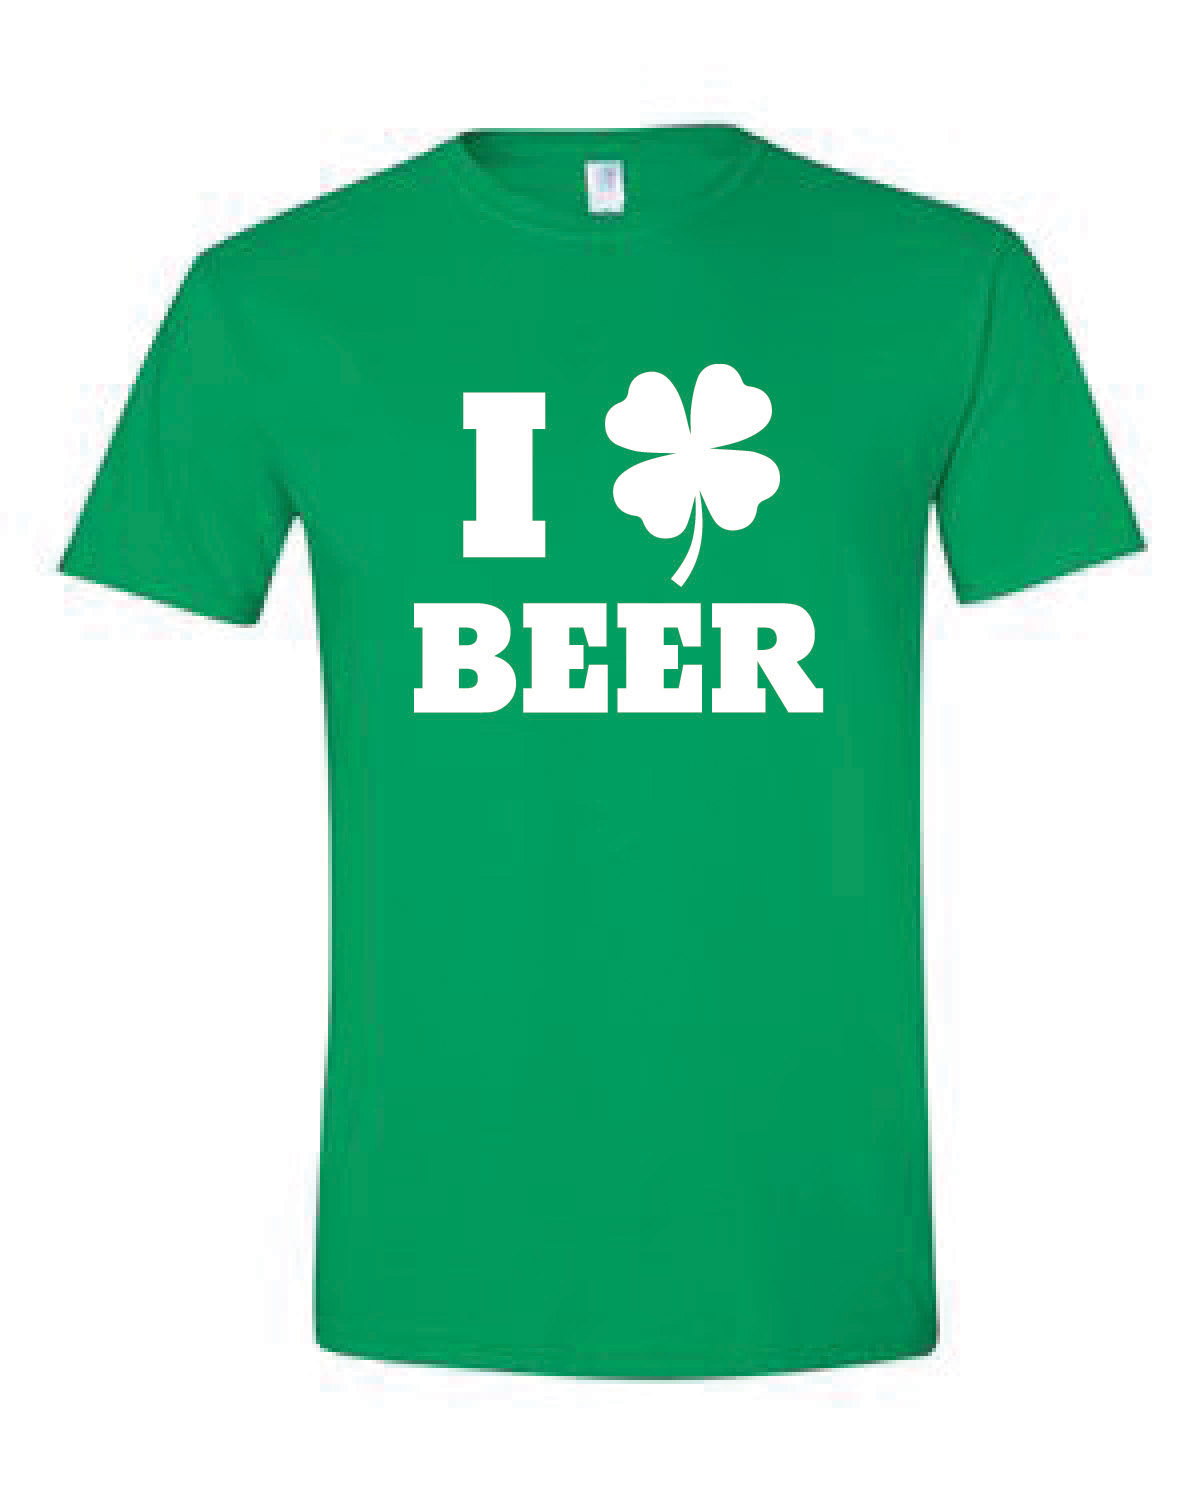 Short Sleeve Softstyle Tee (I LOVE BEER)